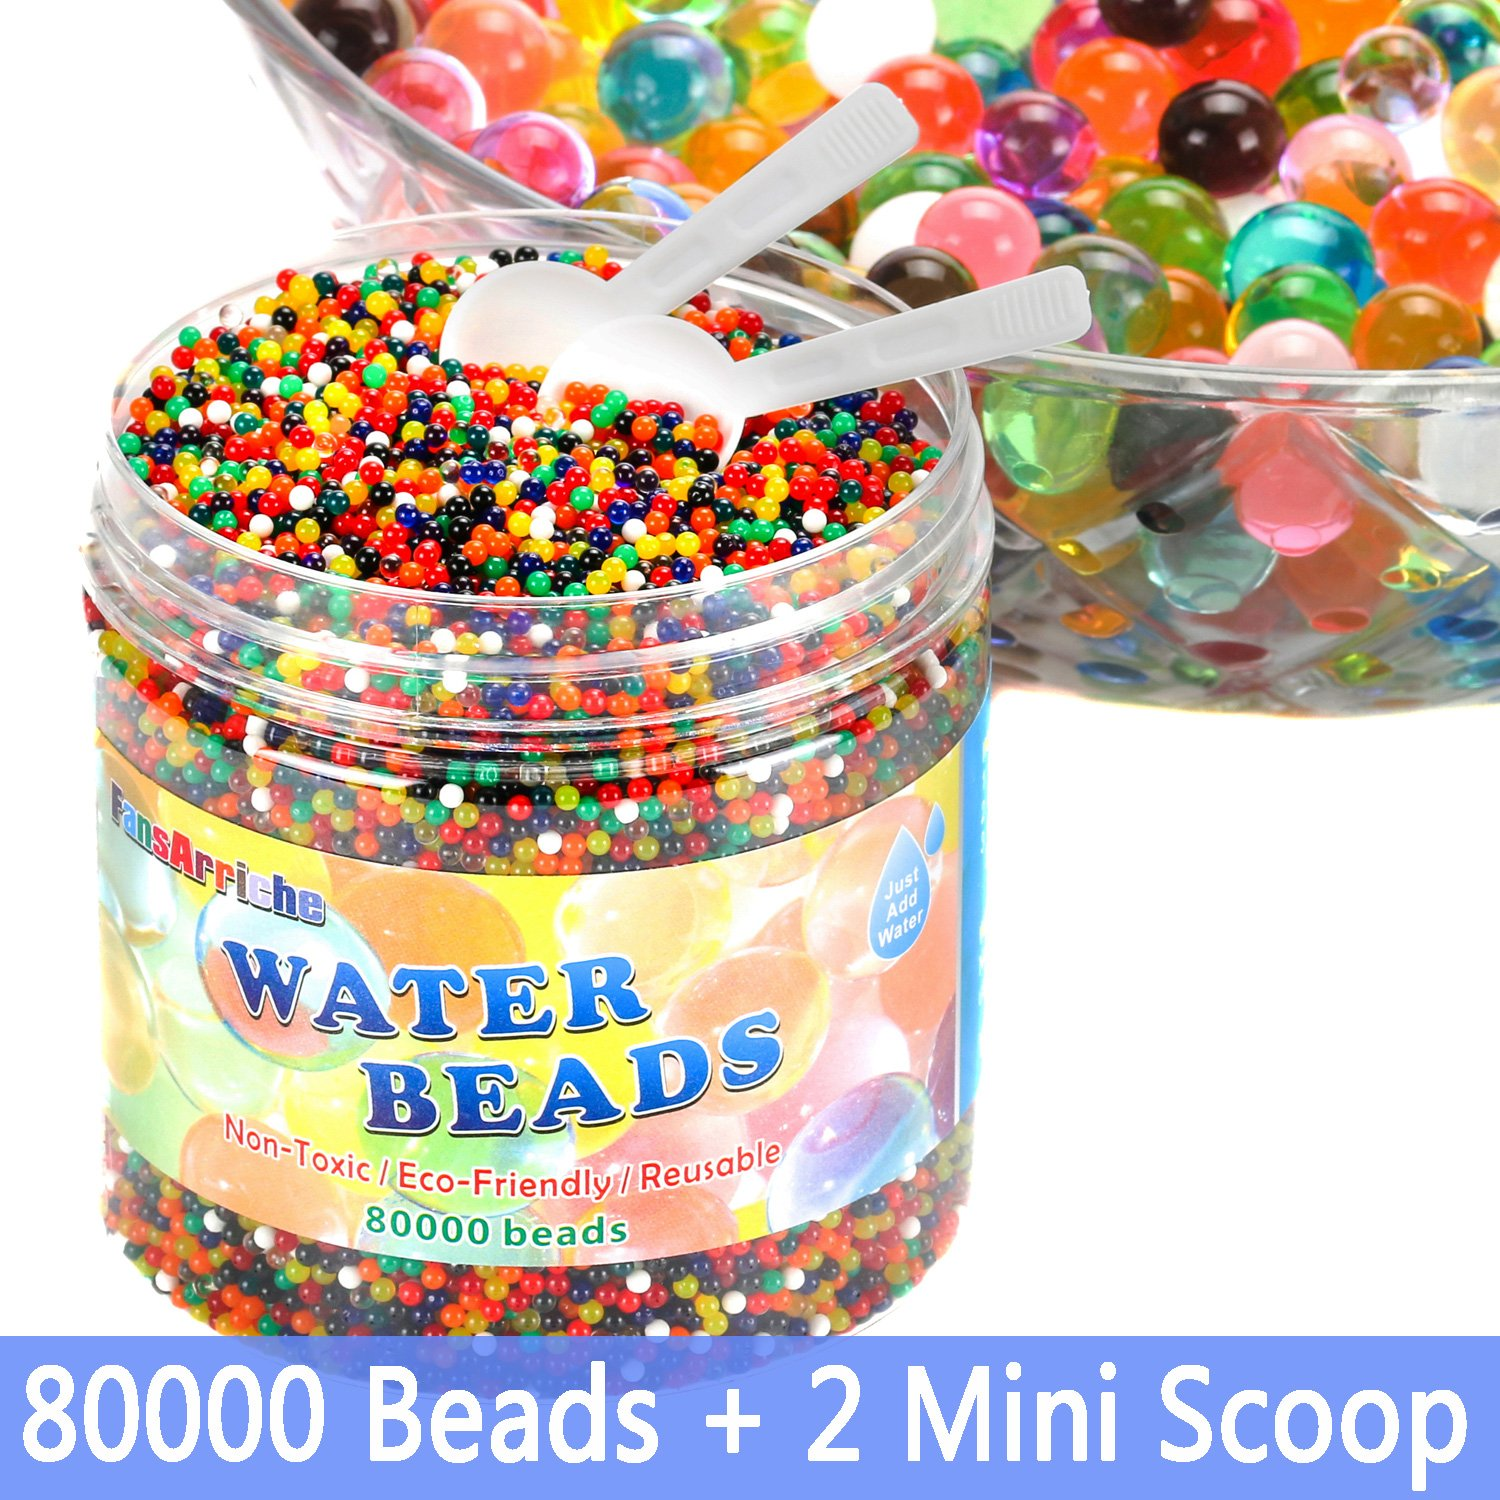 FansArriche Water Beads for kids, 80,000 beads & 2 Counting Scoop Orbeez Beads Water Jelly Beads Gel Water Growing Balls for Orbies Foot Spa Refill,Kids Sensory Toys, Plants Vases